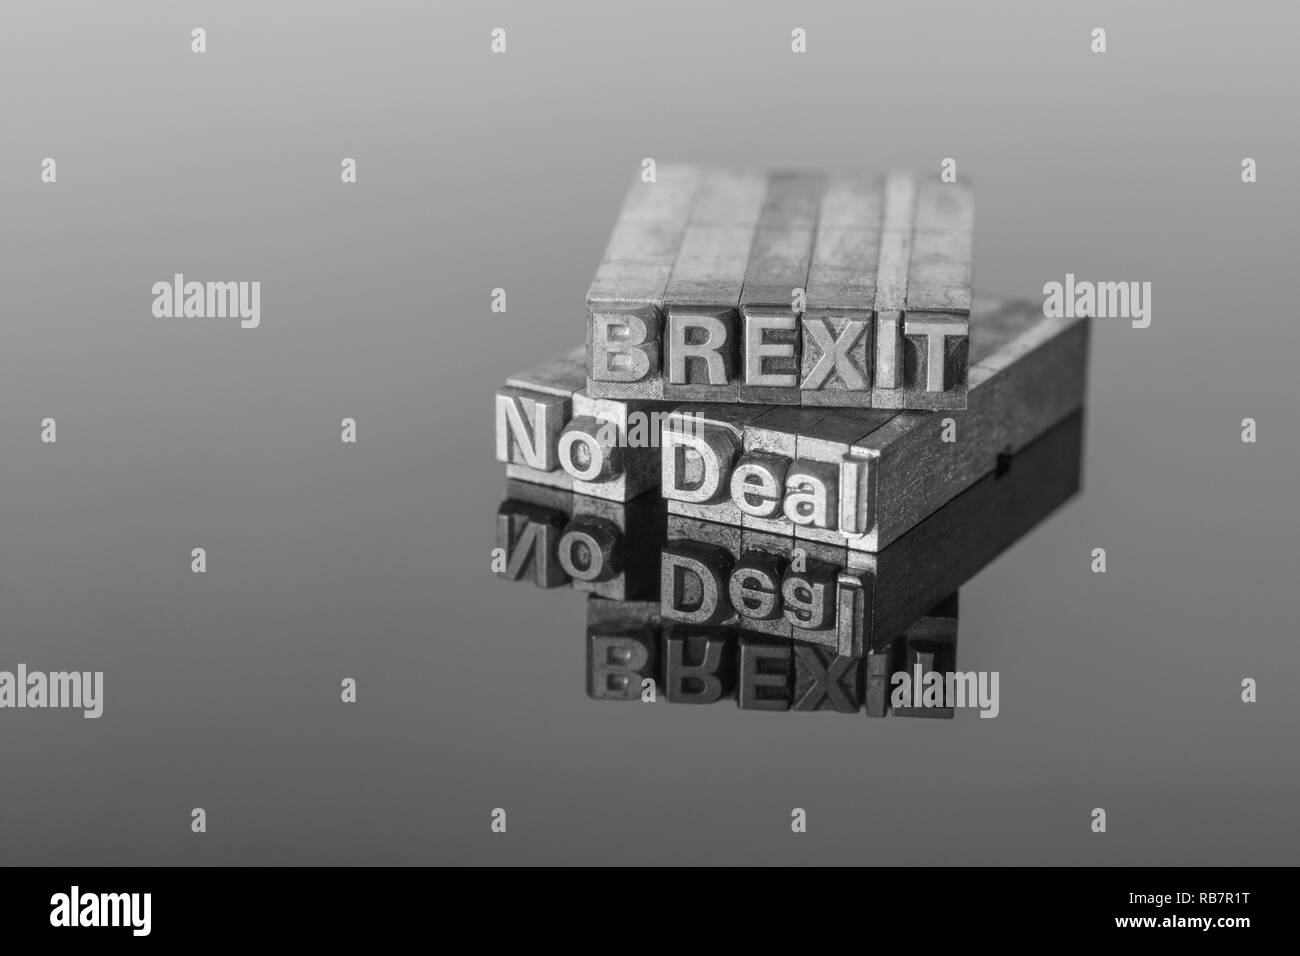 Brexit 'No Deal' spelled out in printer's typeface on a reflective black surface. Metaphor for the UK's Brexit endgame and No Deal scenario. See Notes - Stock Image